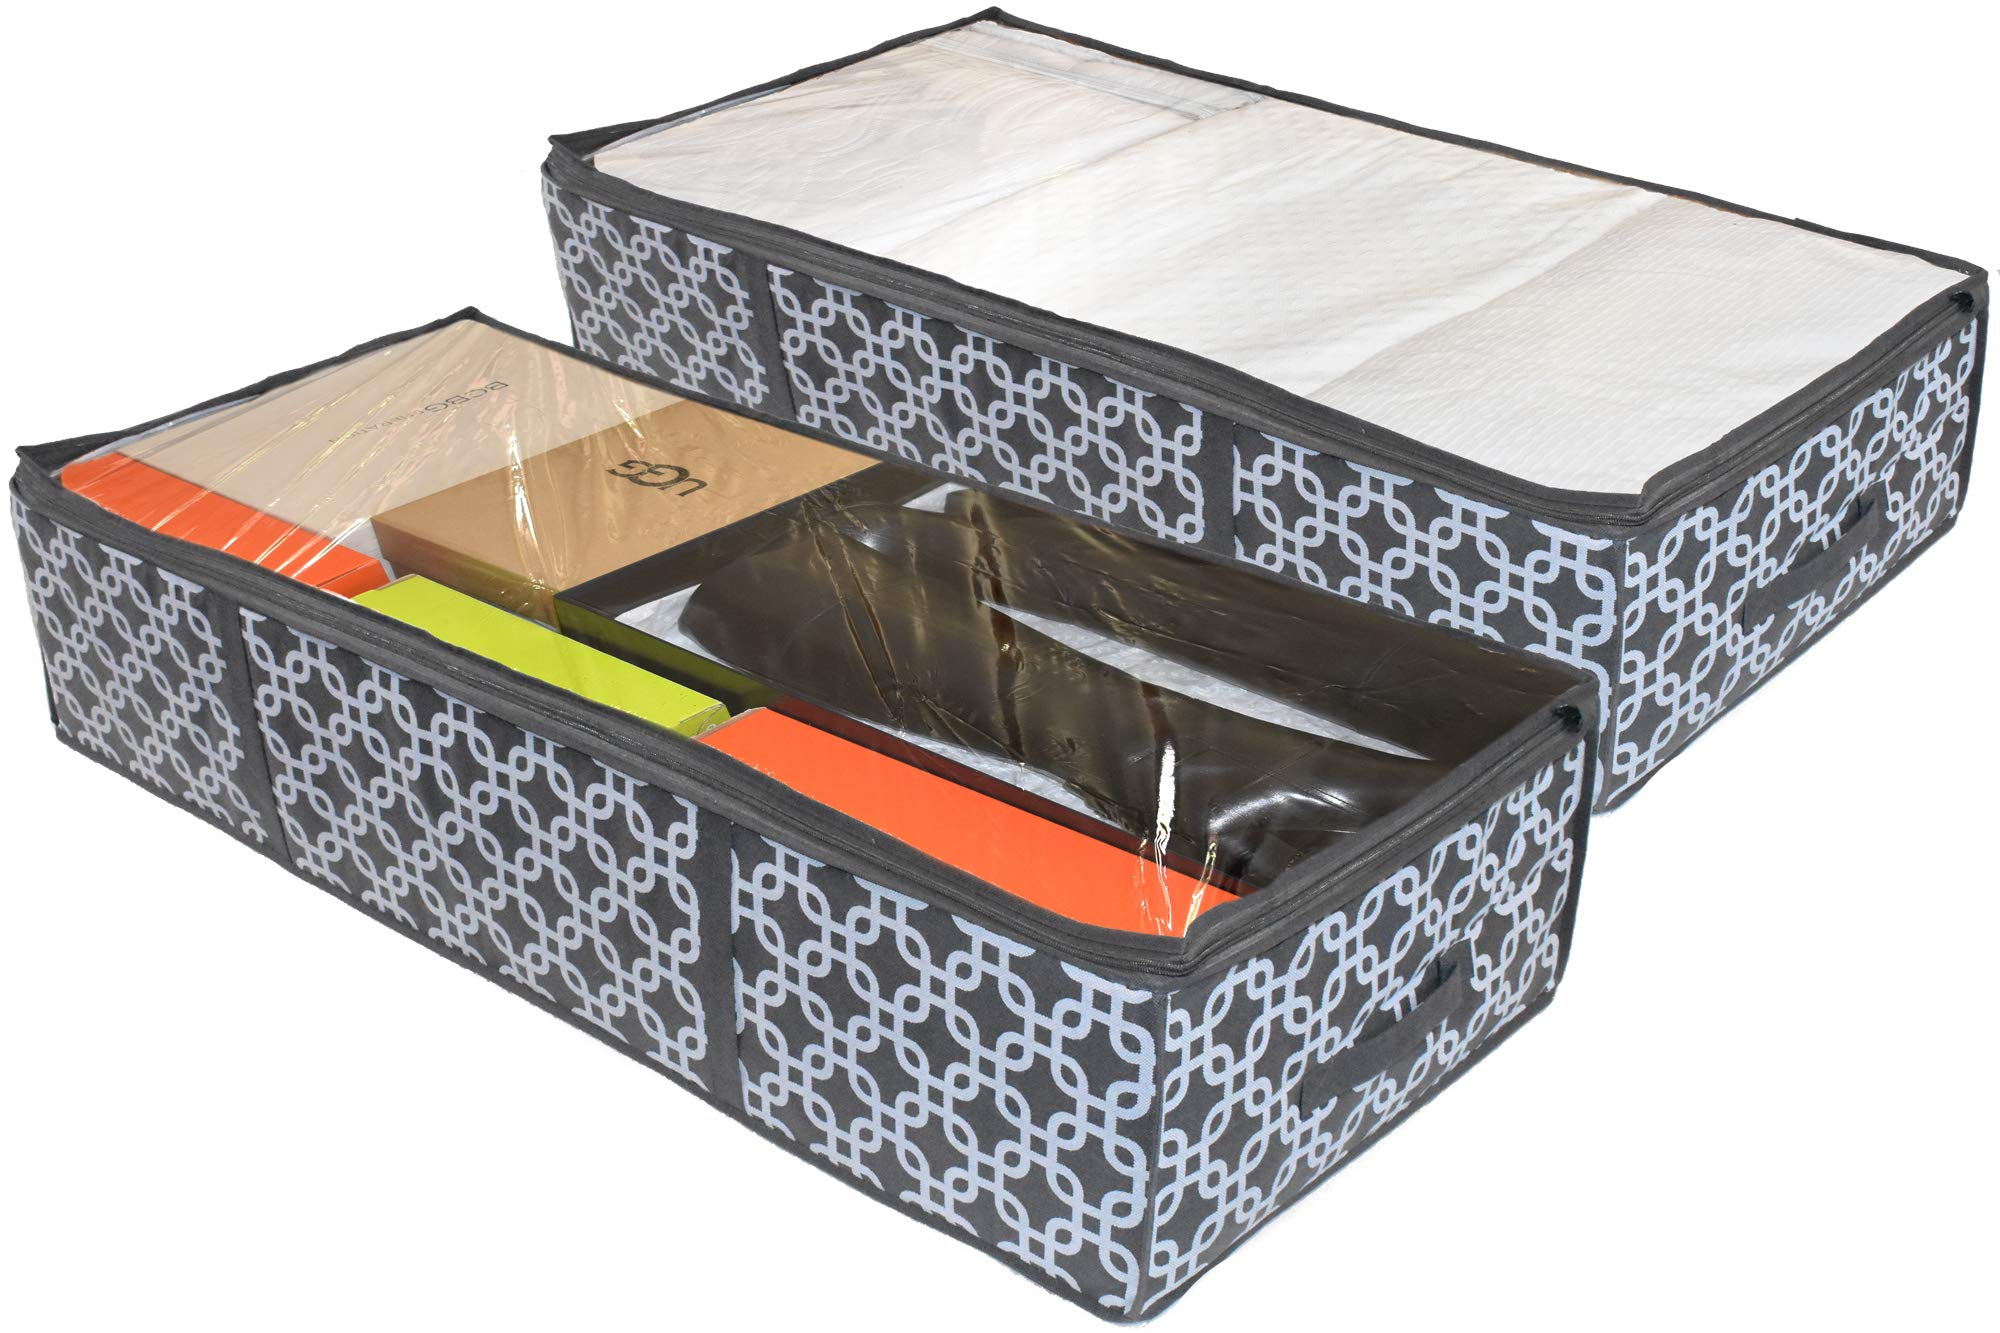 COMPONO 2 Pack Under Bed Storage Containers for Under The Bed Storage with Large Clear Window & Carry Handles. Creates Storage Under Bed Organizer for Any Household Items (Pattern, Underbed Storage) by COMPONO